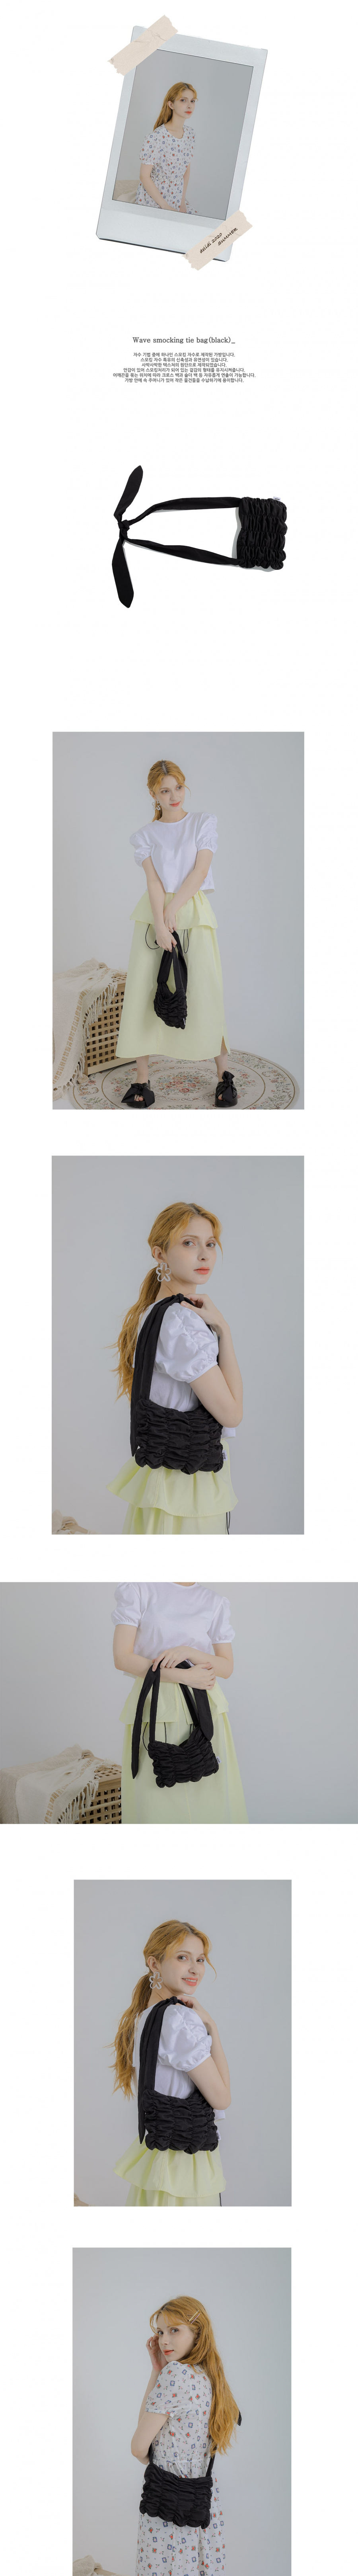 딜라이디(DELIDI) Wave smocking tie bag (black)